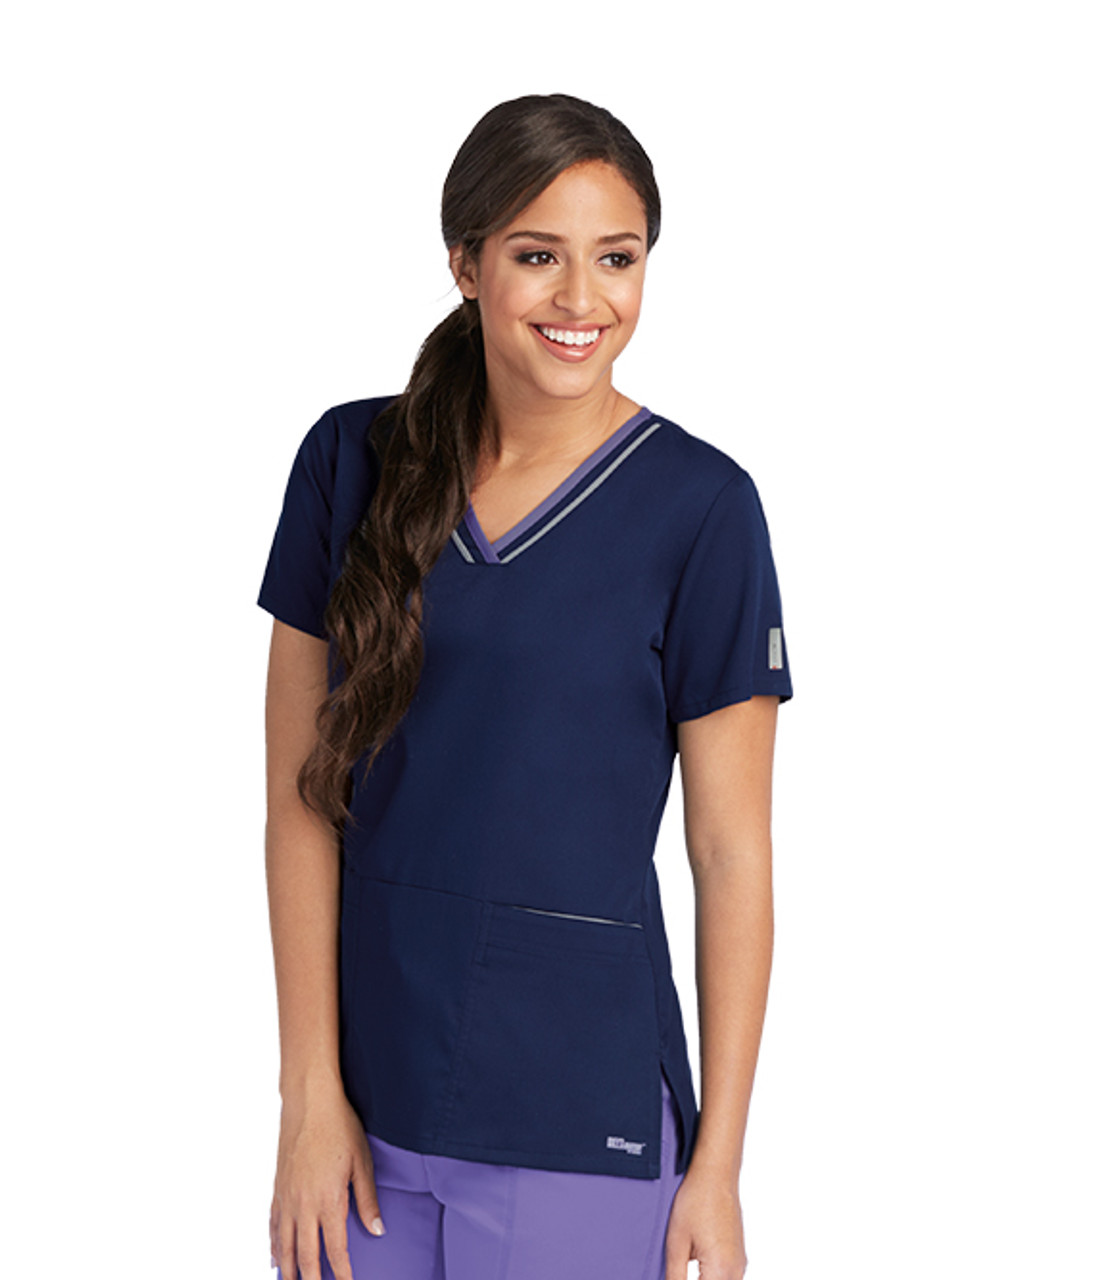 Grey/'s Anatomy Active Women/'s 41466 3 Pocket Color Block Top